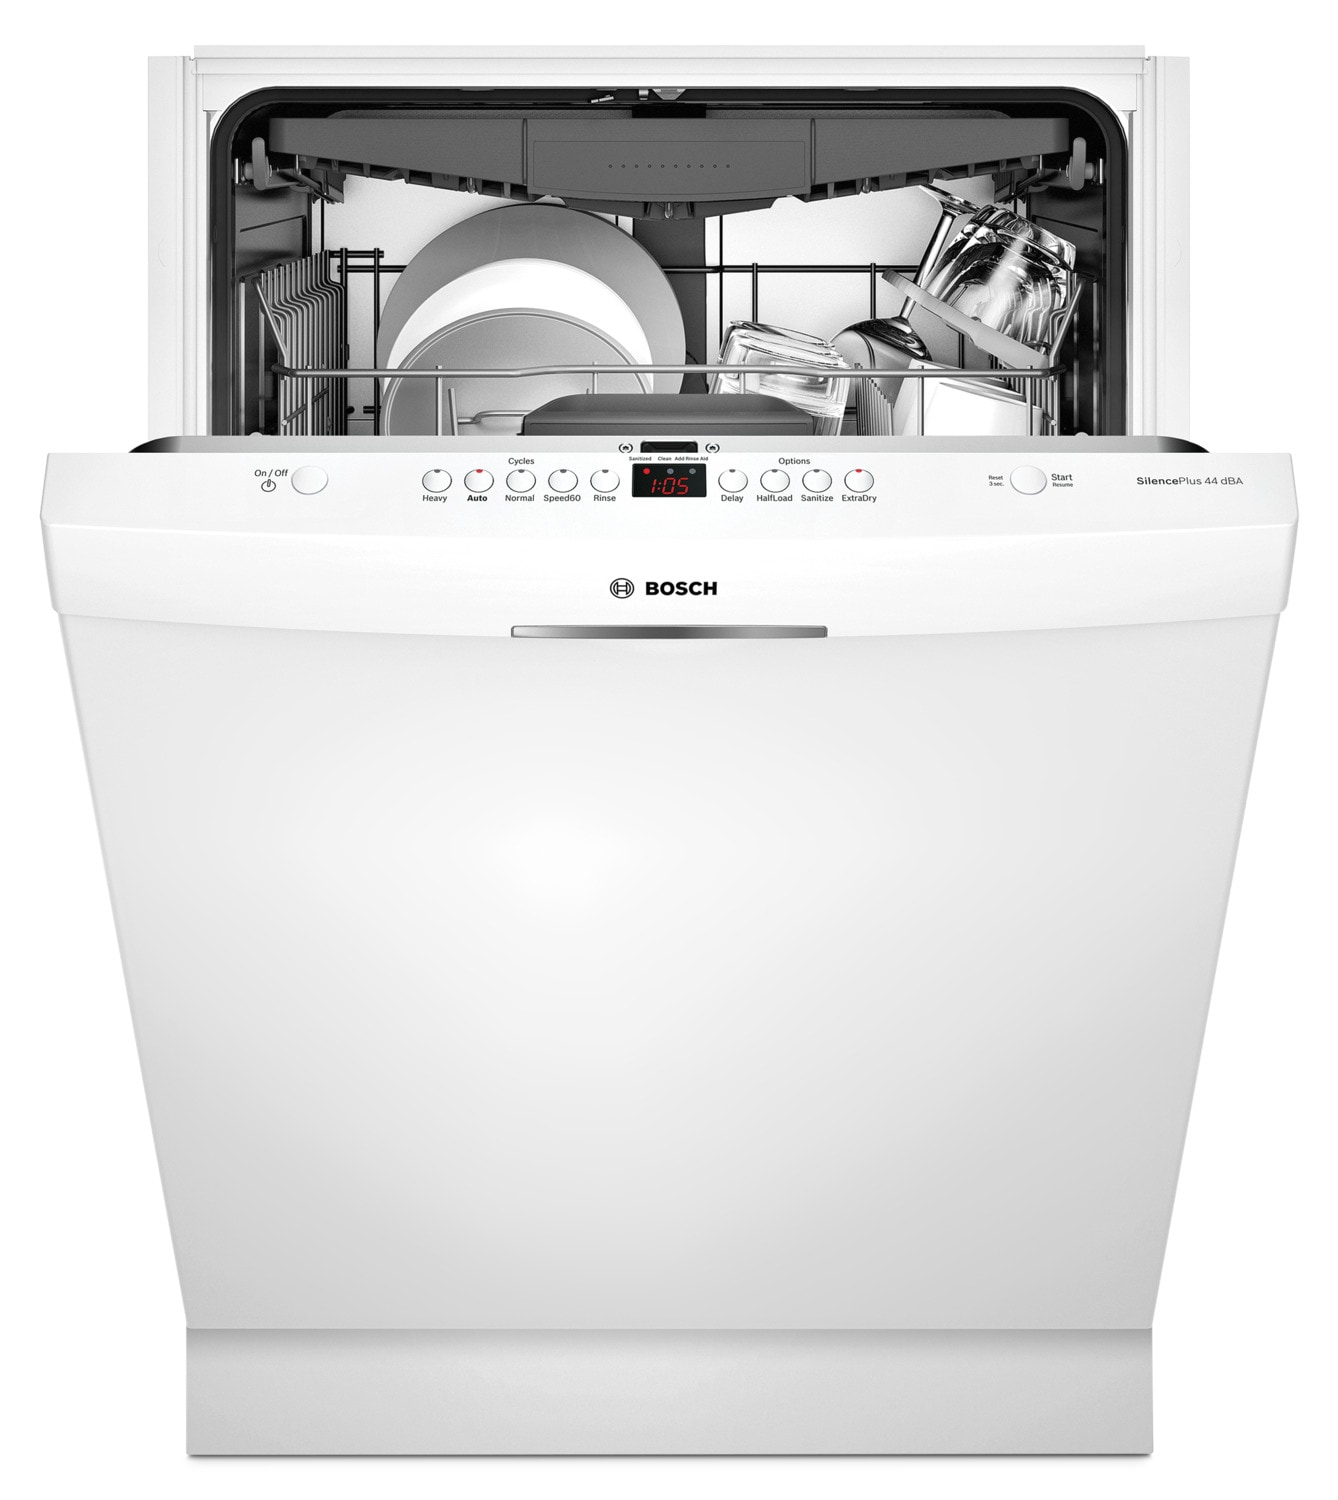 Bosch 300 Series Scoop Handle Built-In Dishwasher – SHSM63W52N